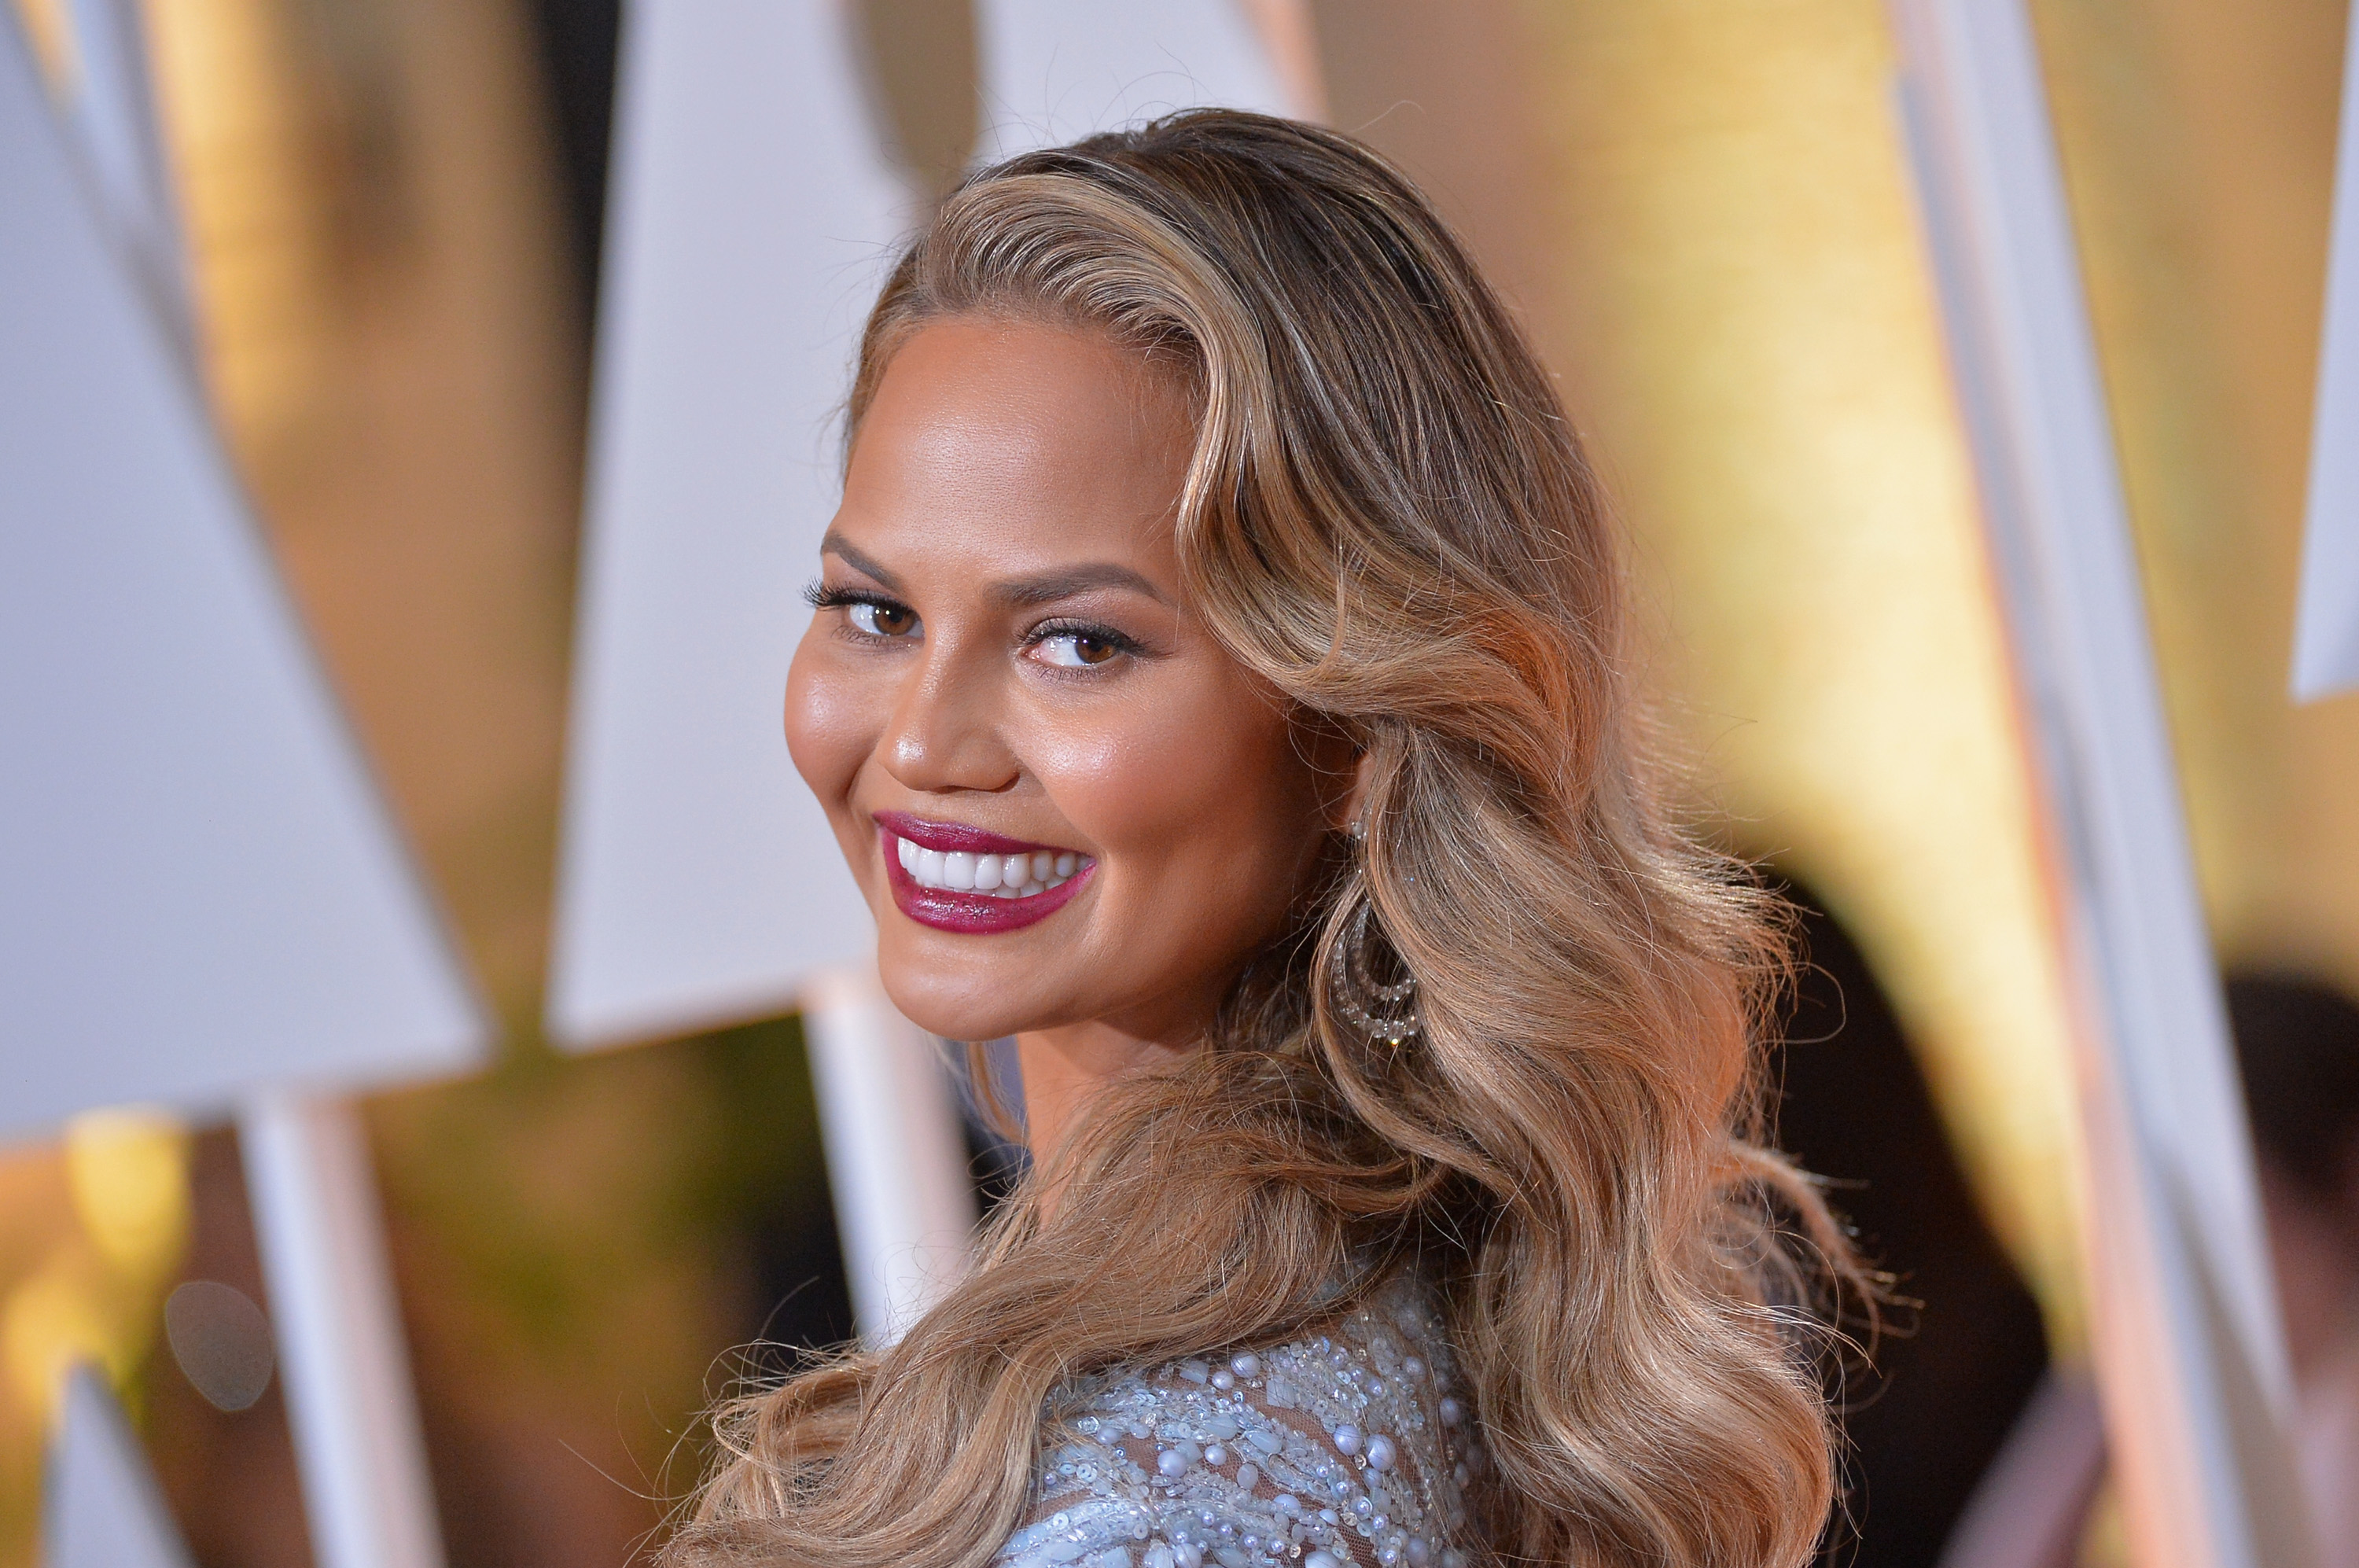 Why Did Chrissy Teigen Ask Joe Biden to Unfollow Her on Twitter? - Newsweek